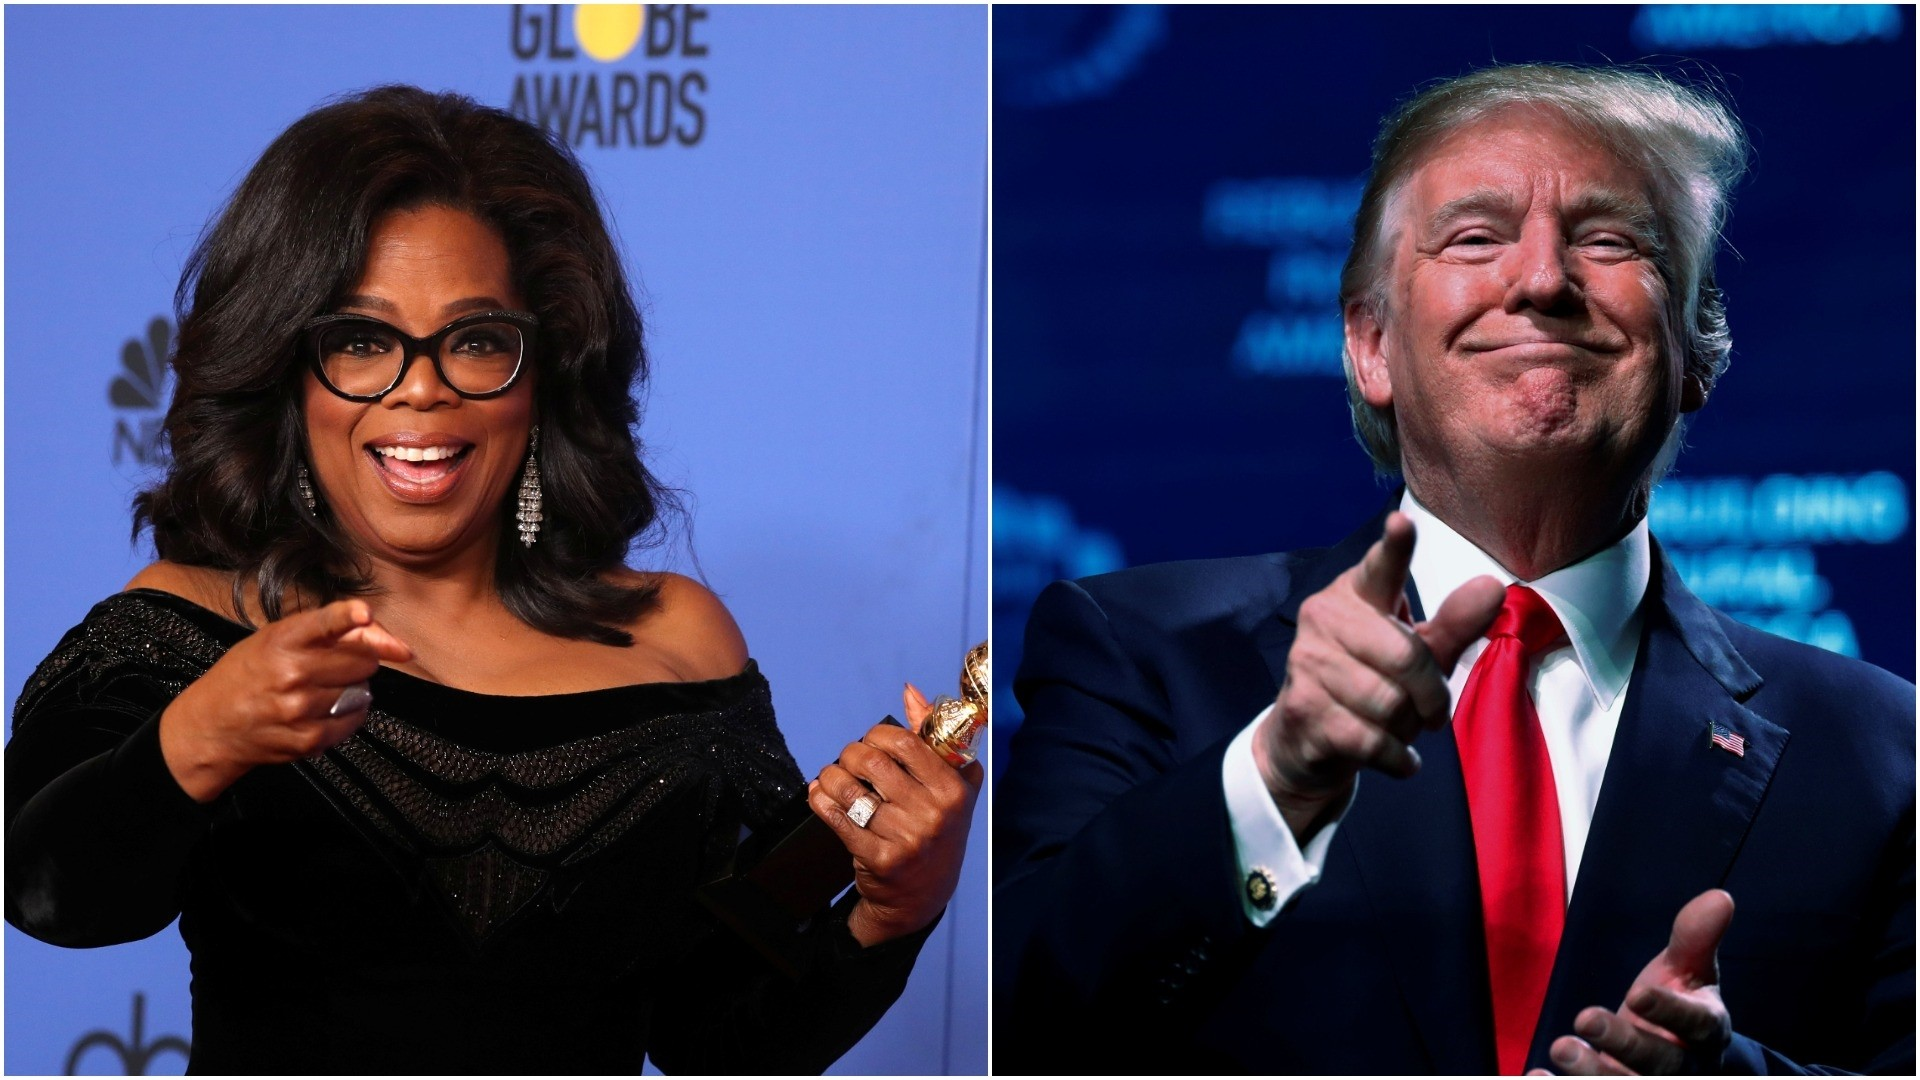 Oprah poses backstage at the 75th Golden Globe Awards in Beverly Hills/ Trump concludes his remarks at the American Farm Bureau Federation convention in Nashville. (REUTERS Photo)